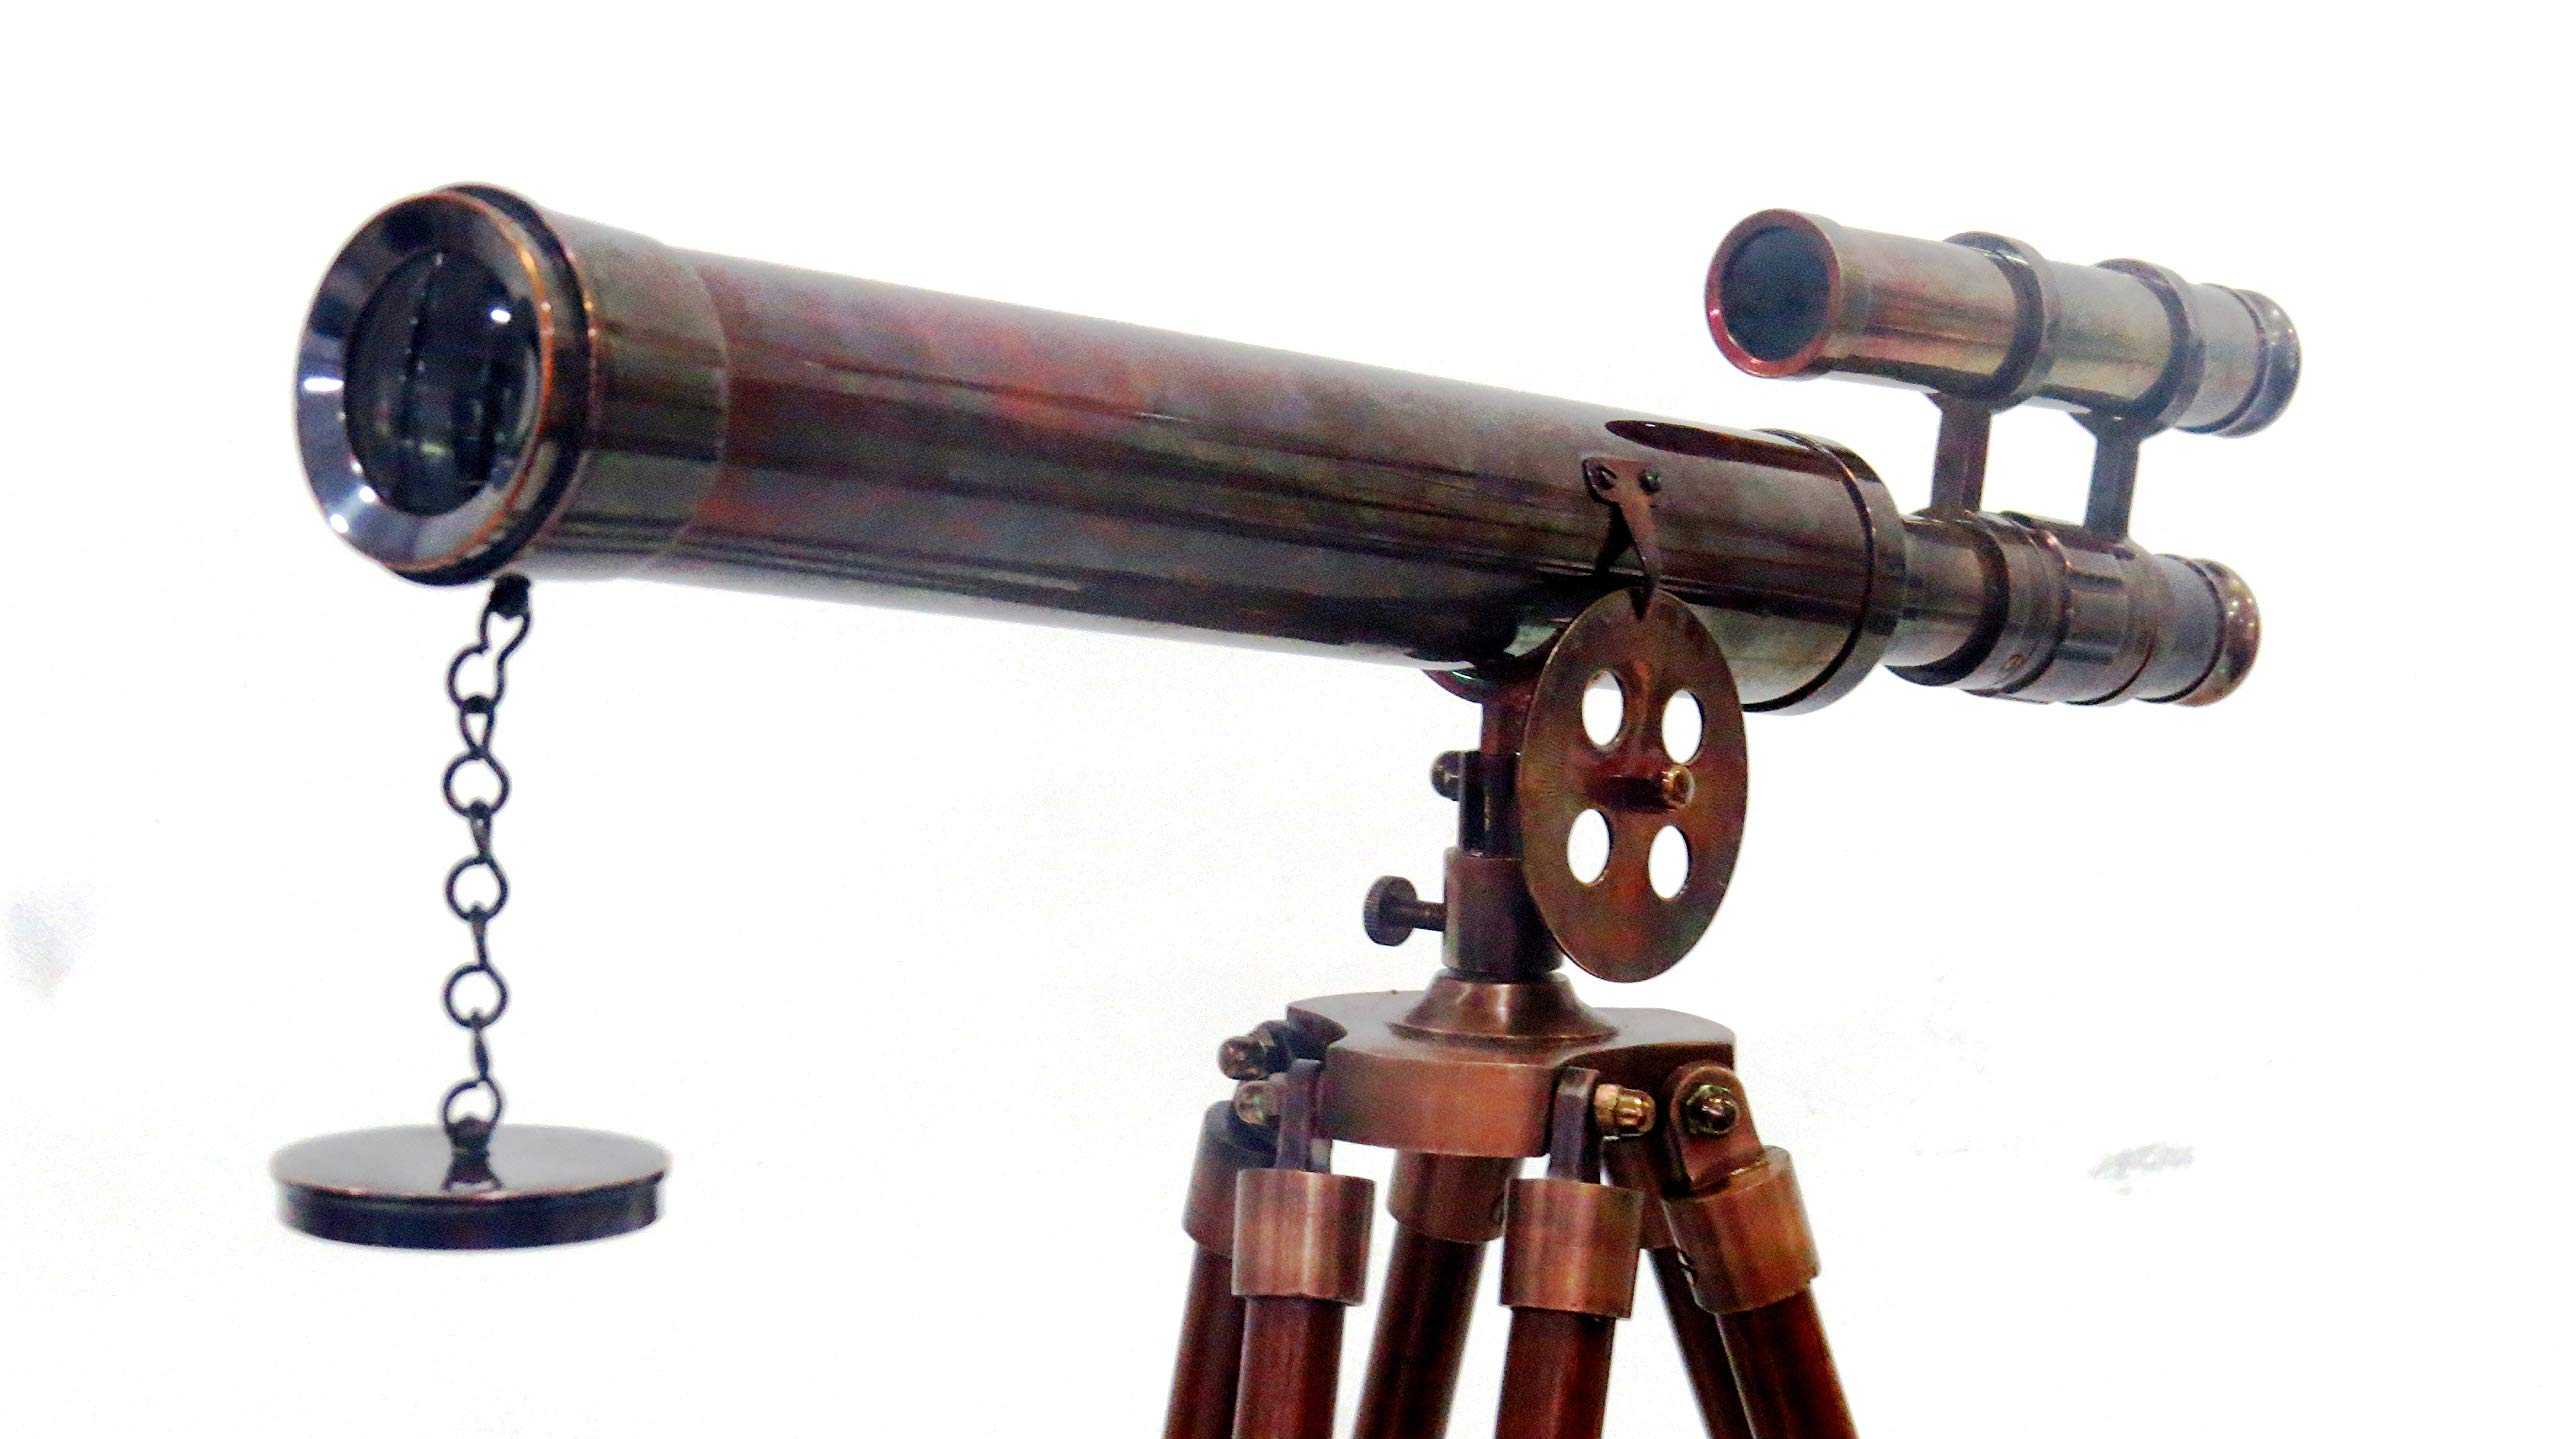 Nautical Antique Copper Griffith Astro Telescope 45''-Vintage Telescope by NauticalMart